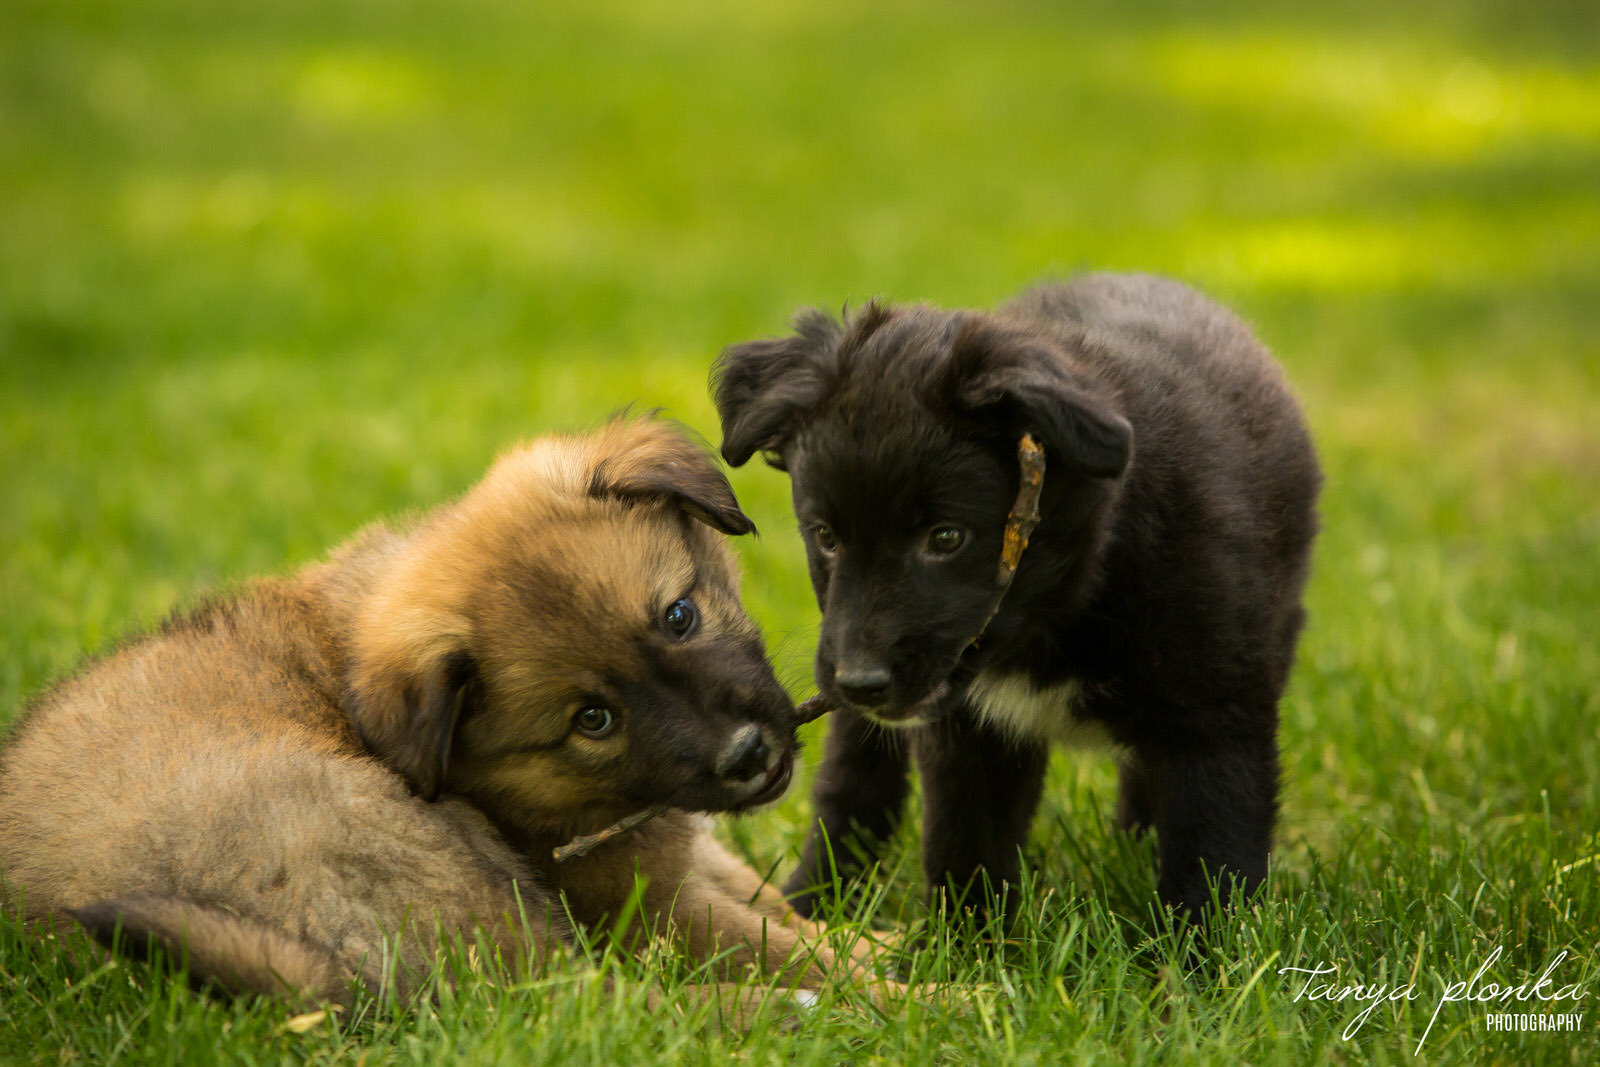 a brown puppy and a black puppy play tug of war with a stick on a green lawn